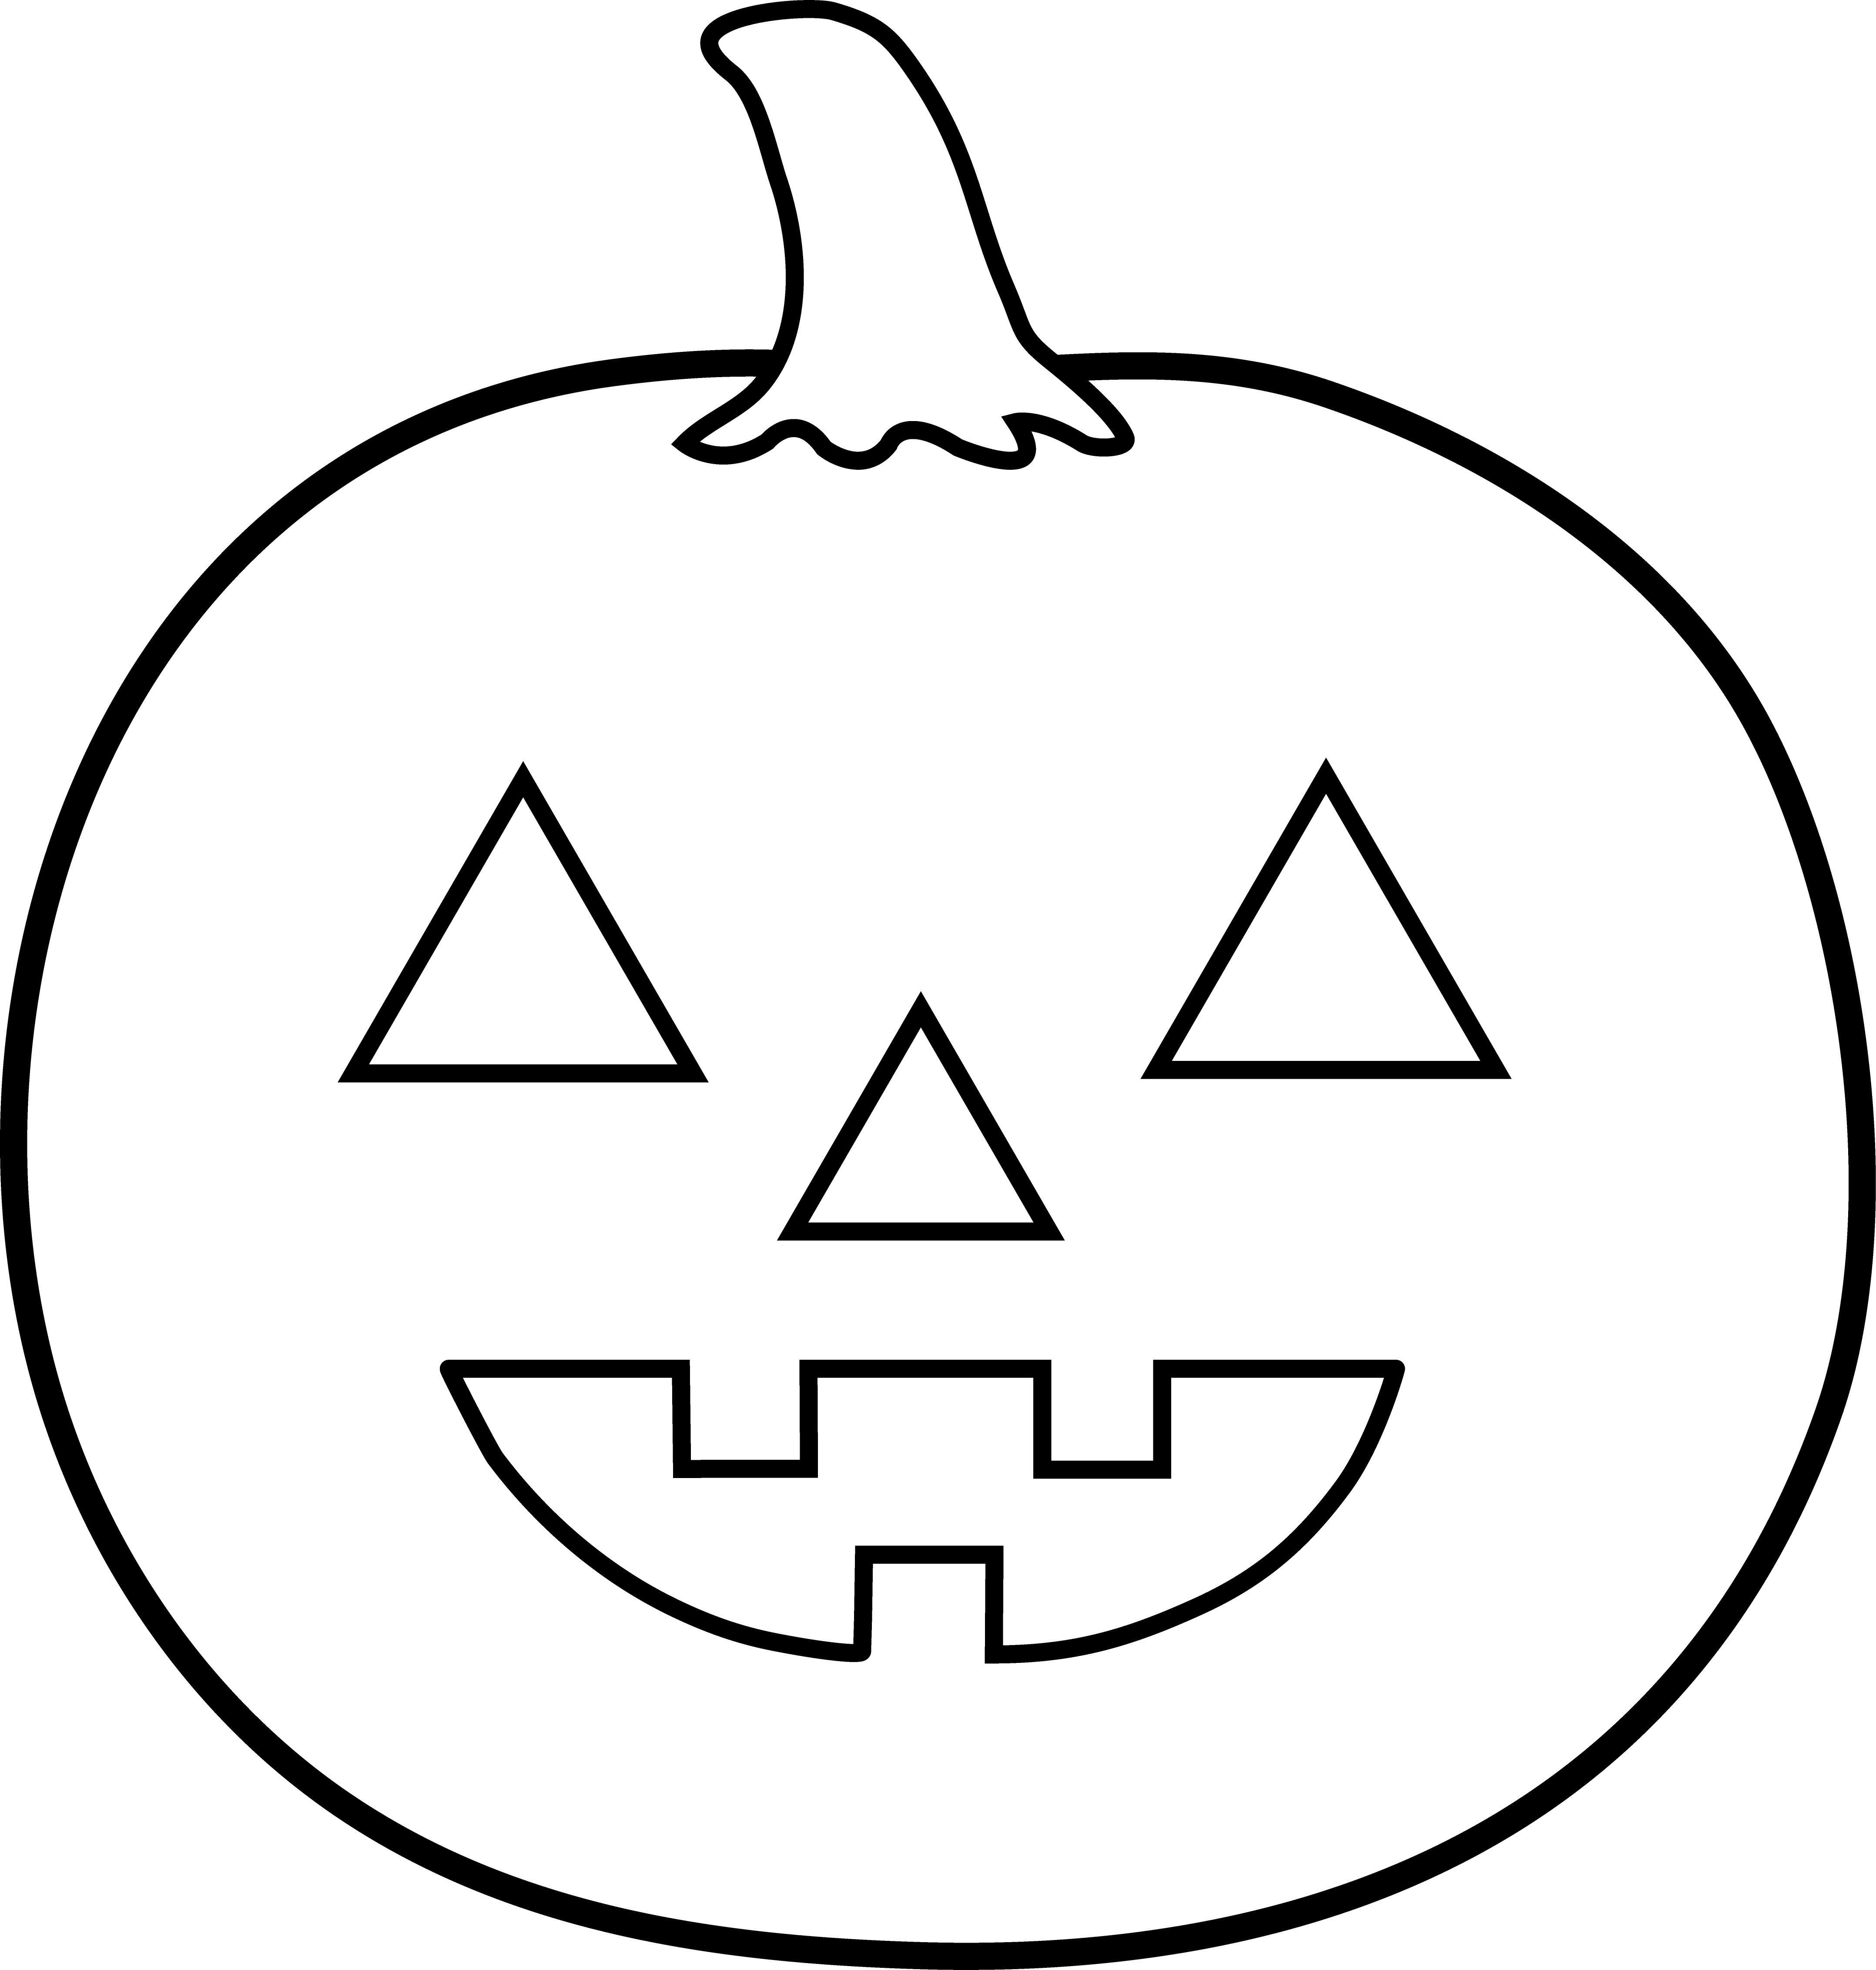 Pumpkin carving clipart black and white image royalty free Halloween Jack O Lantern For Coloring - Free Clip Art image royalty free